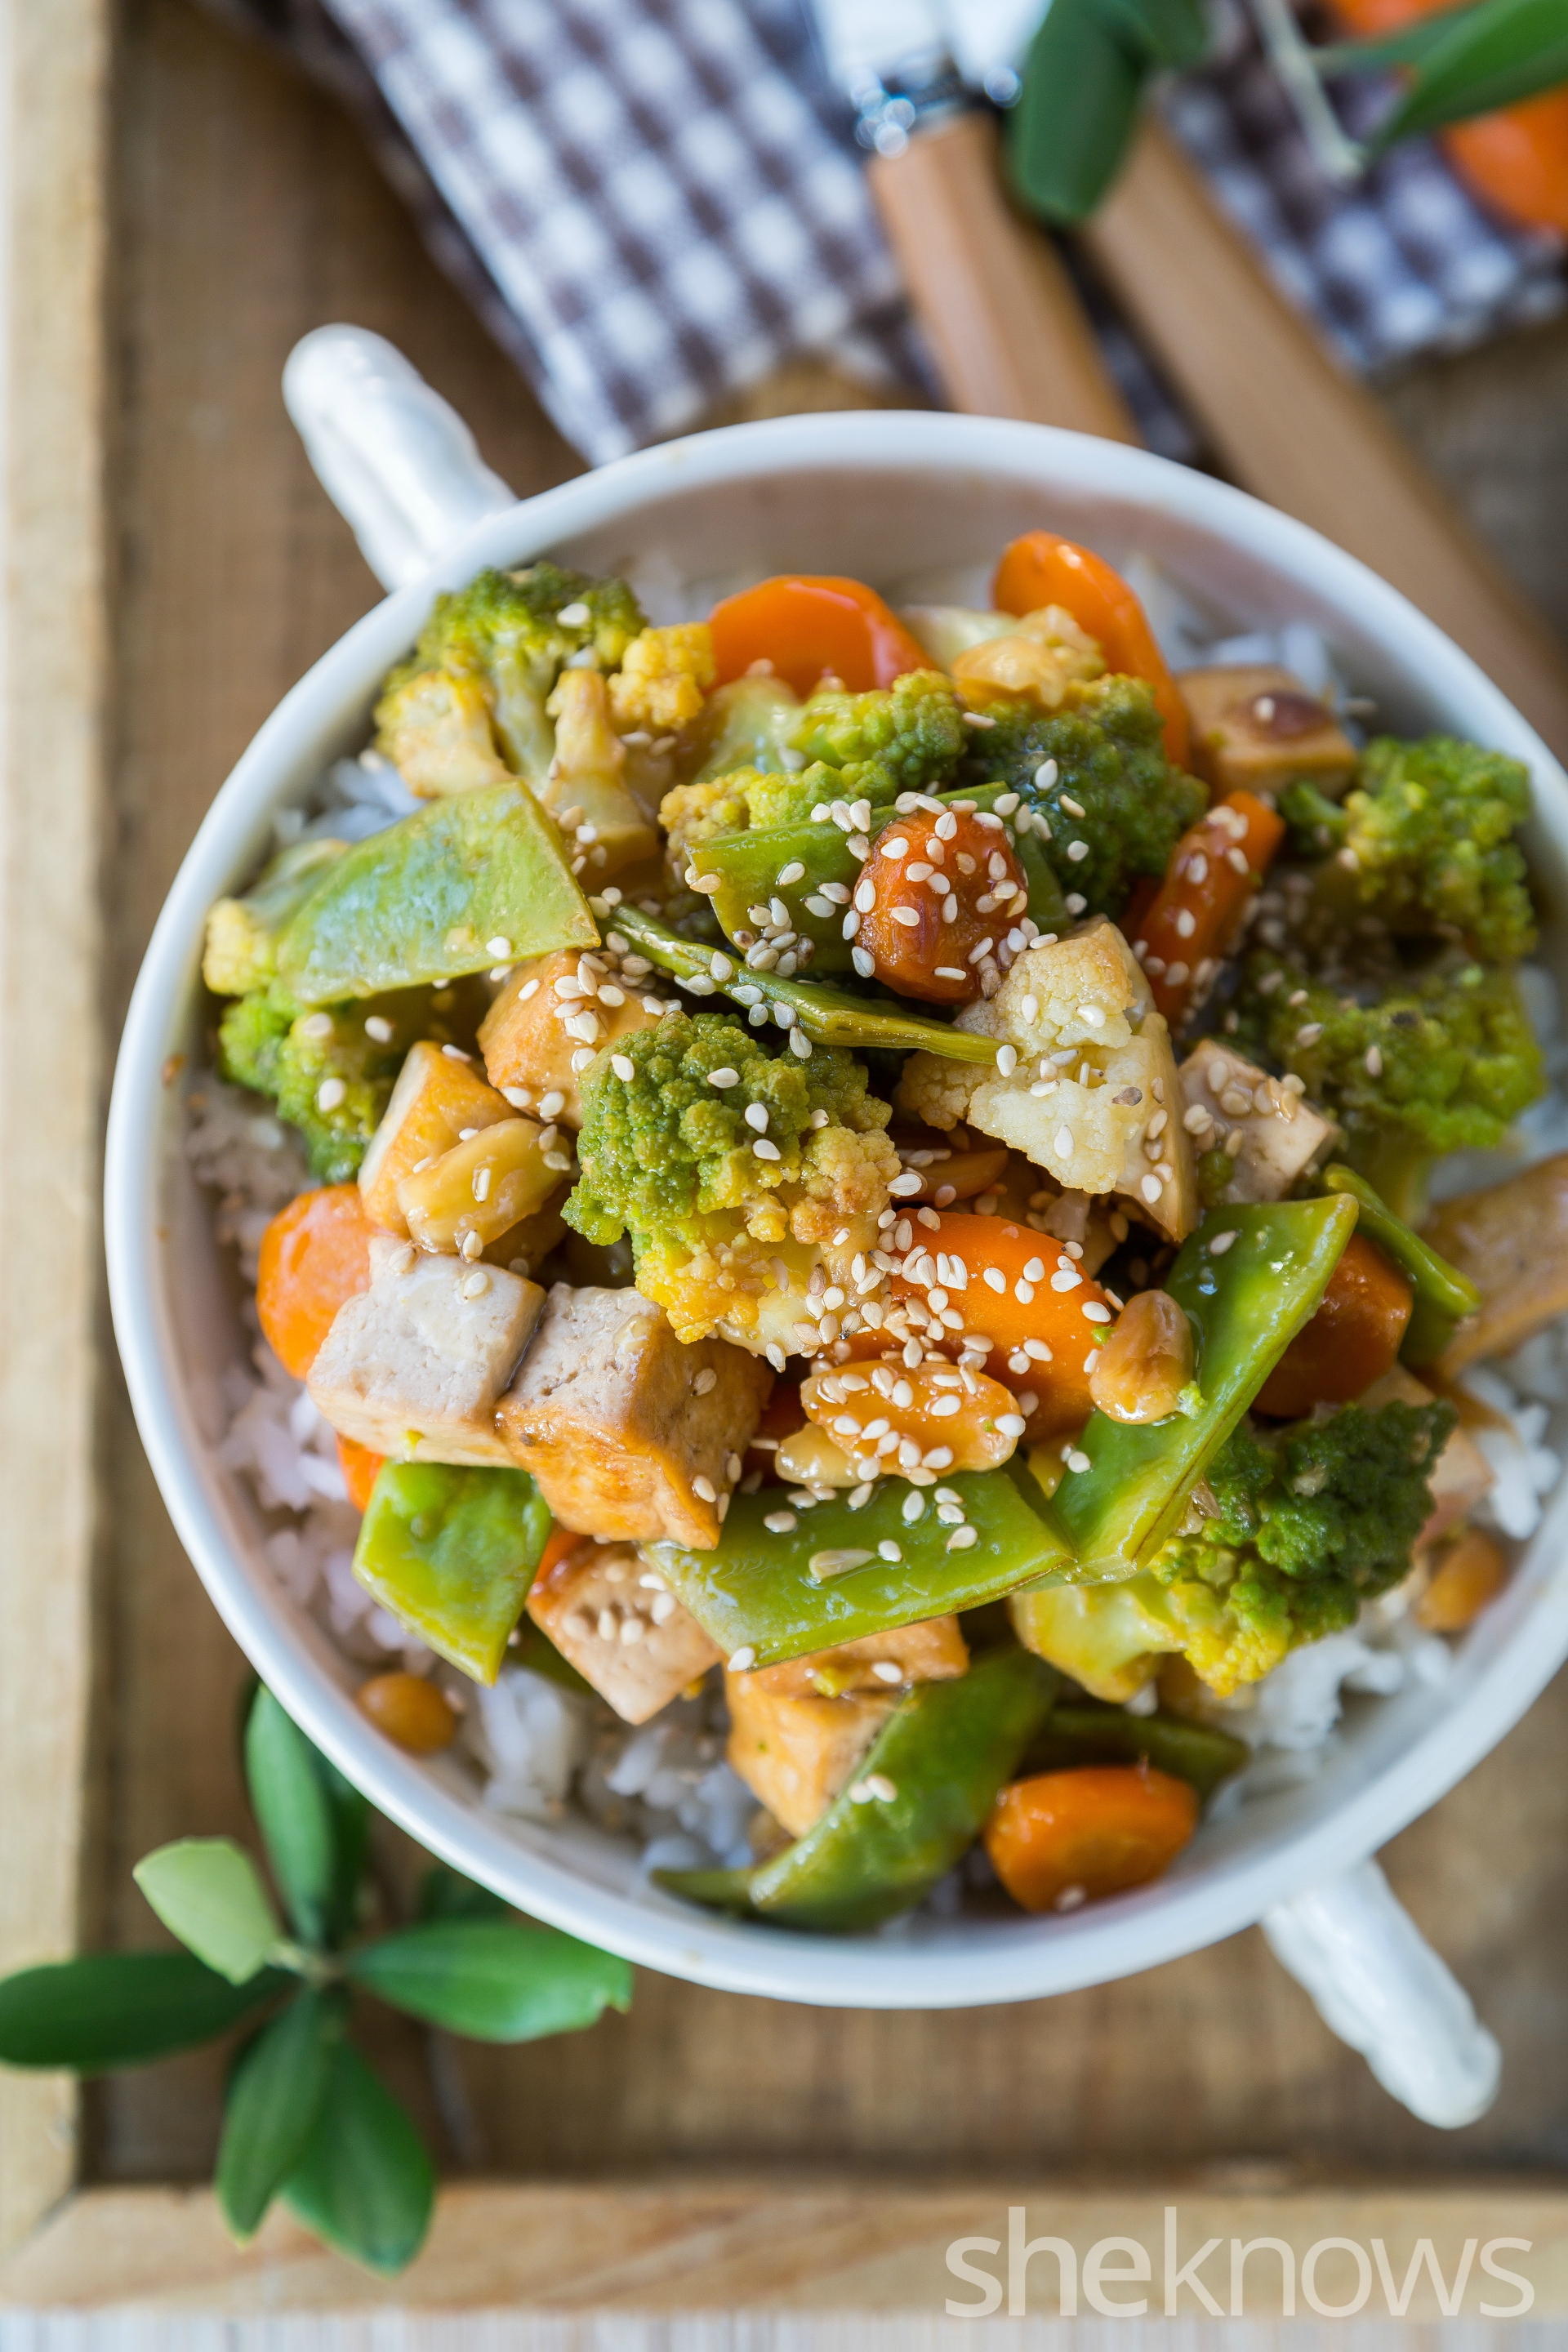 Sauteed-tofu-and-vegetables-in-oyster-sauce-vertical